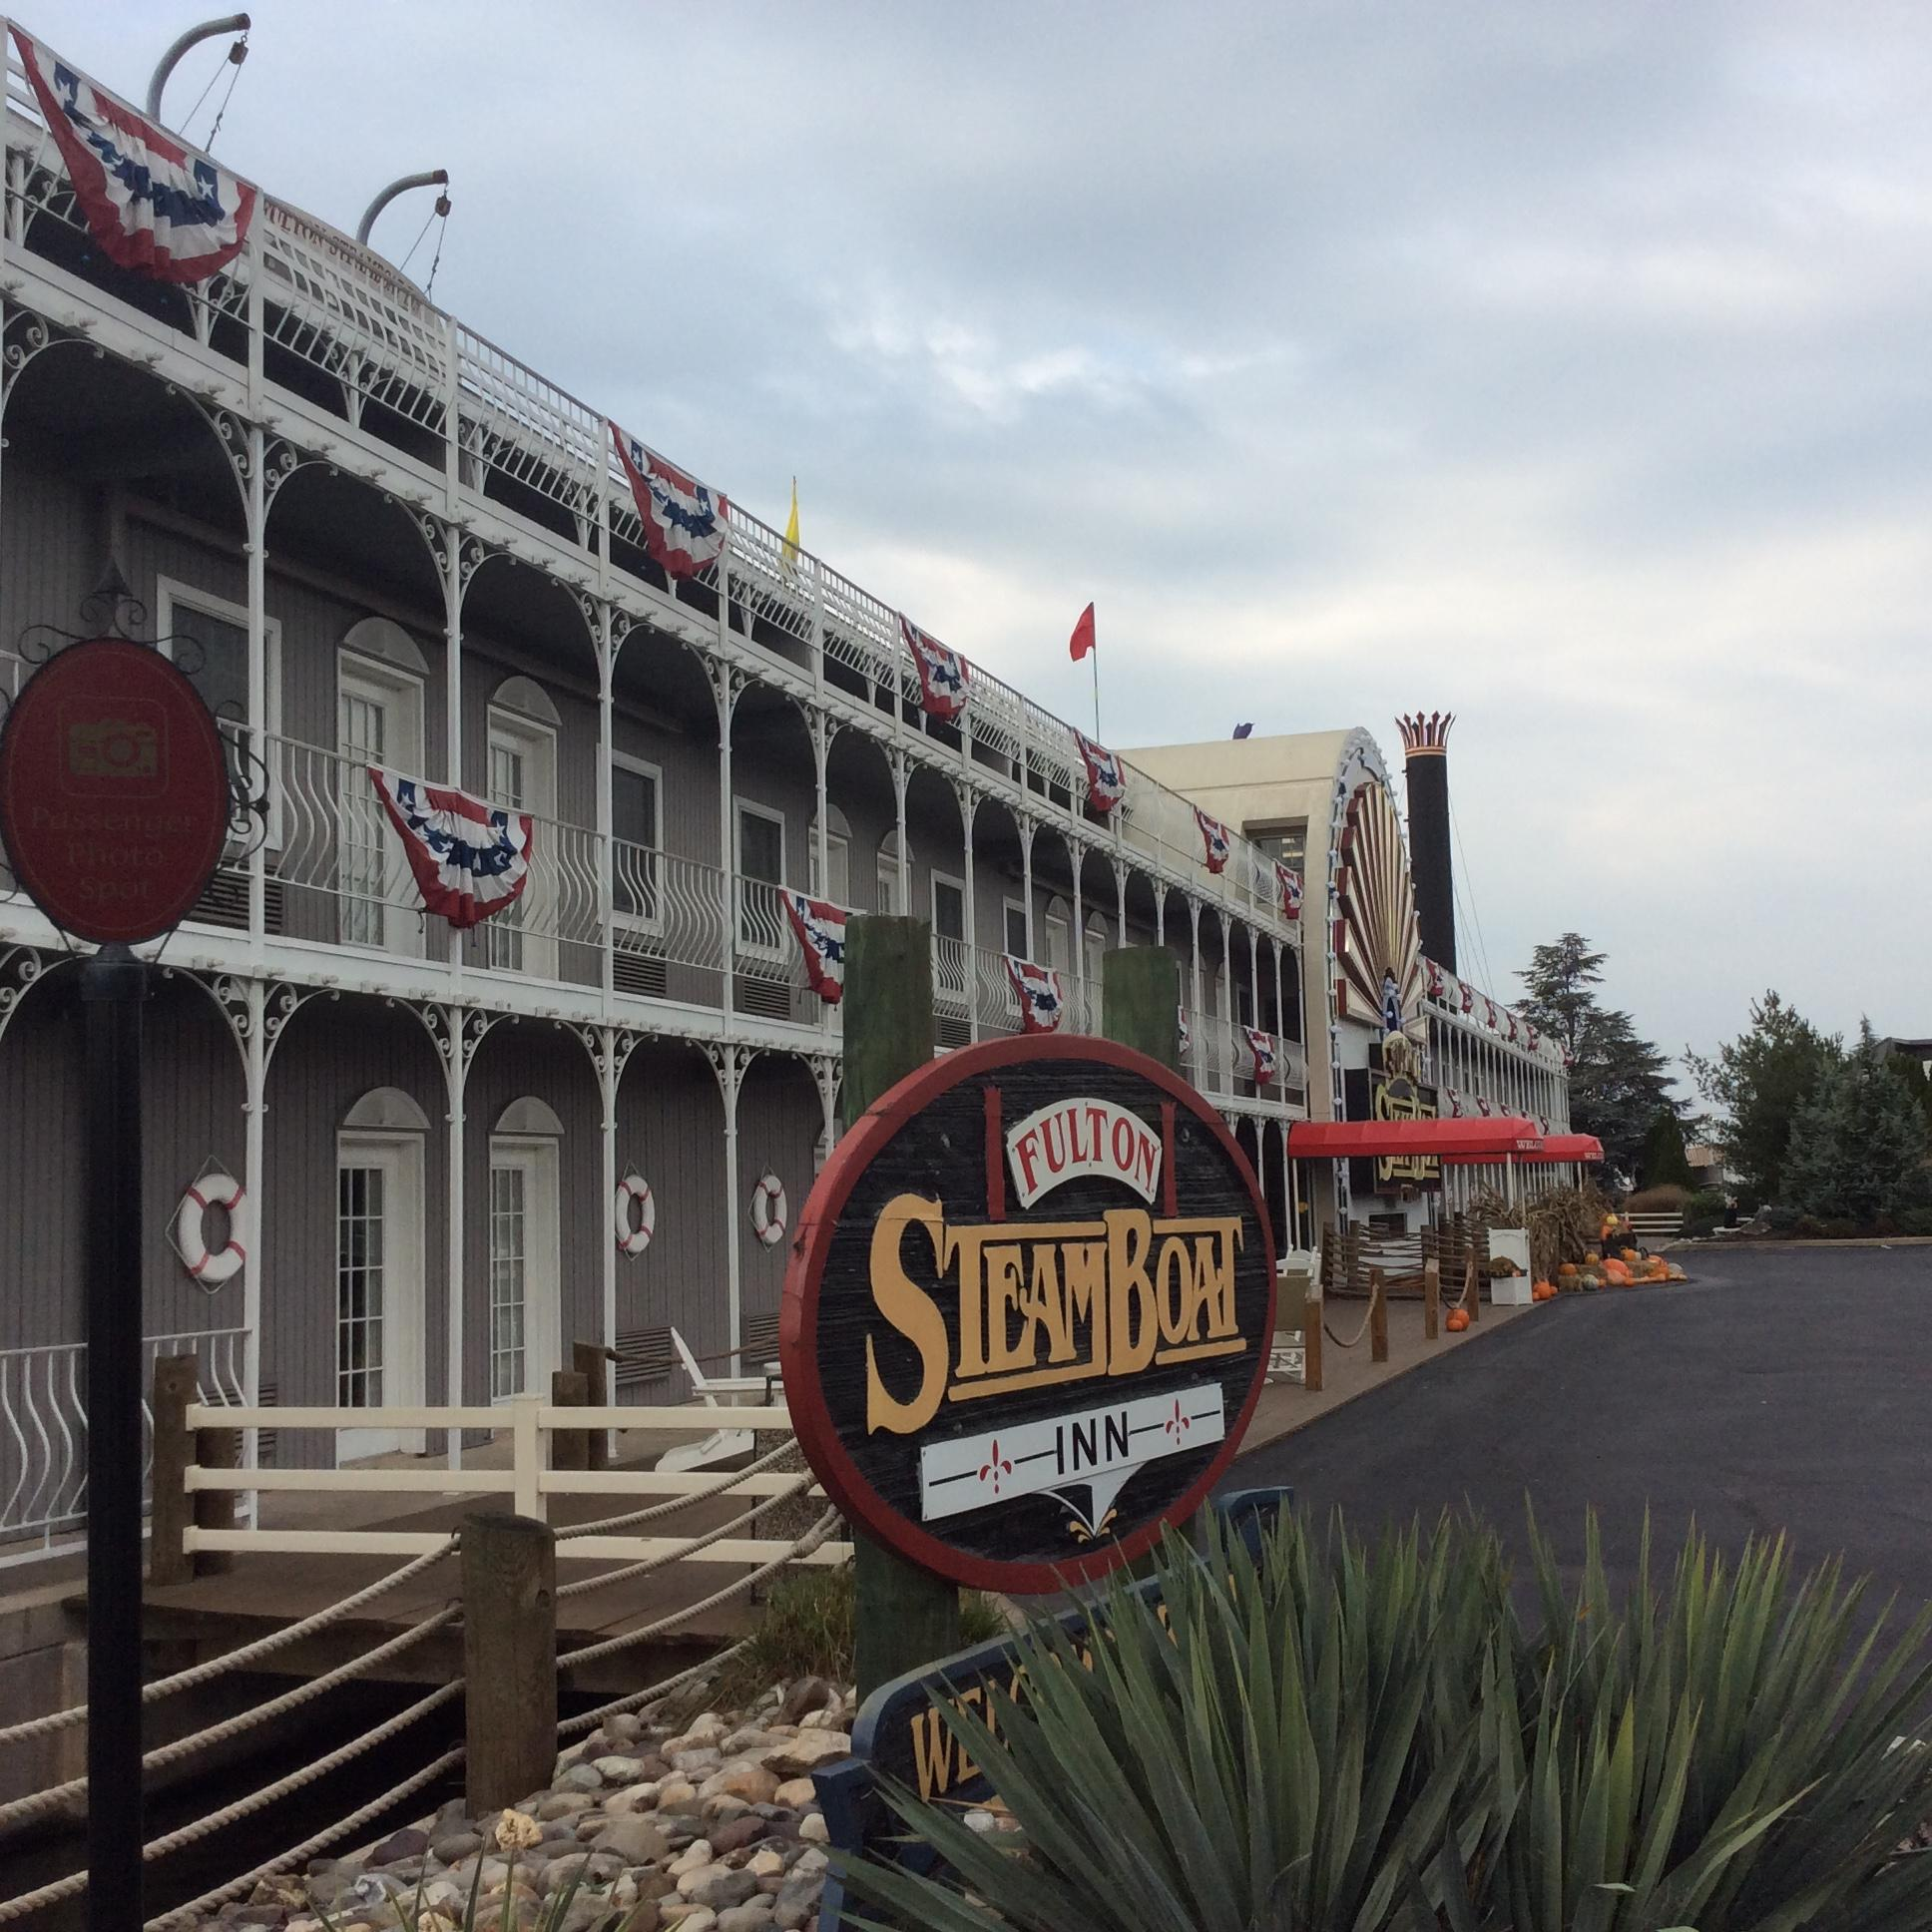 Suites In Lancaster Pa: Fulton Steamboat Inn, Lancaster